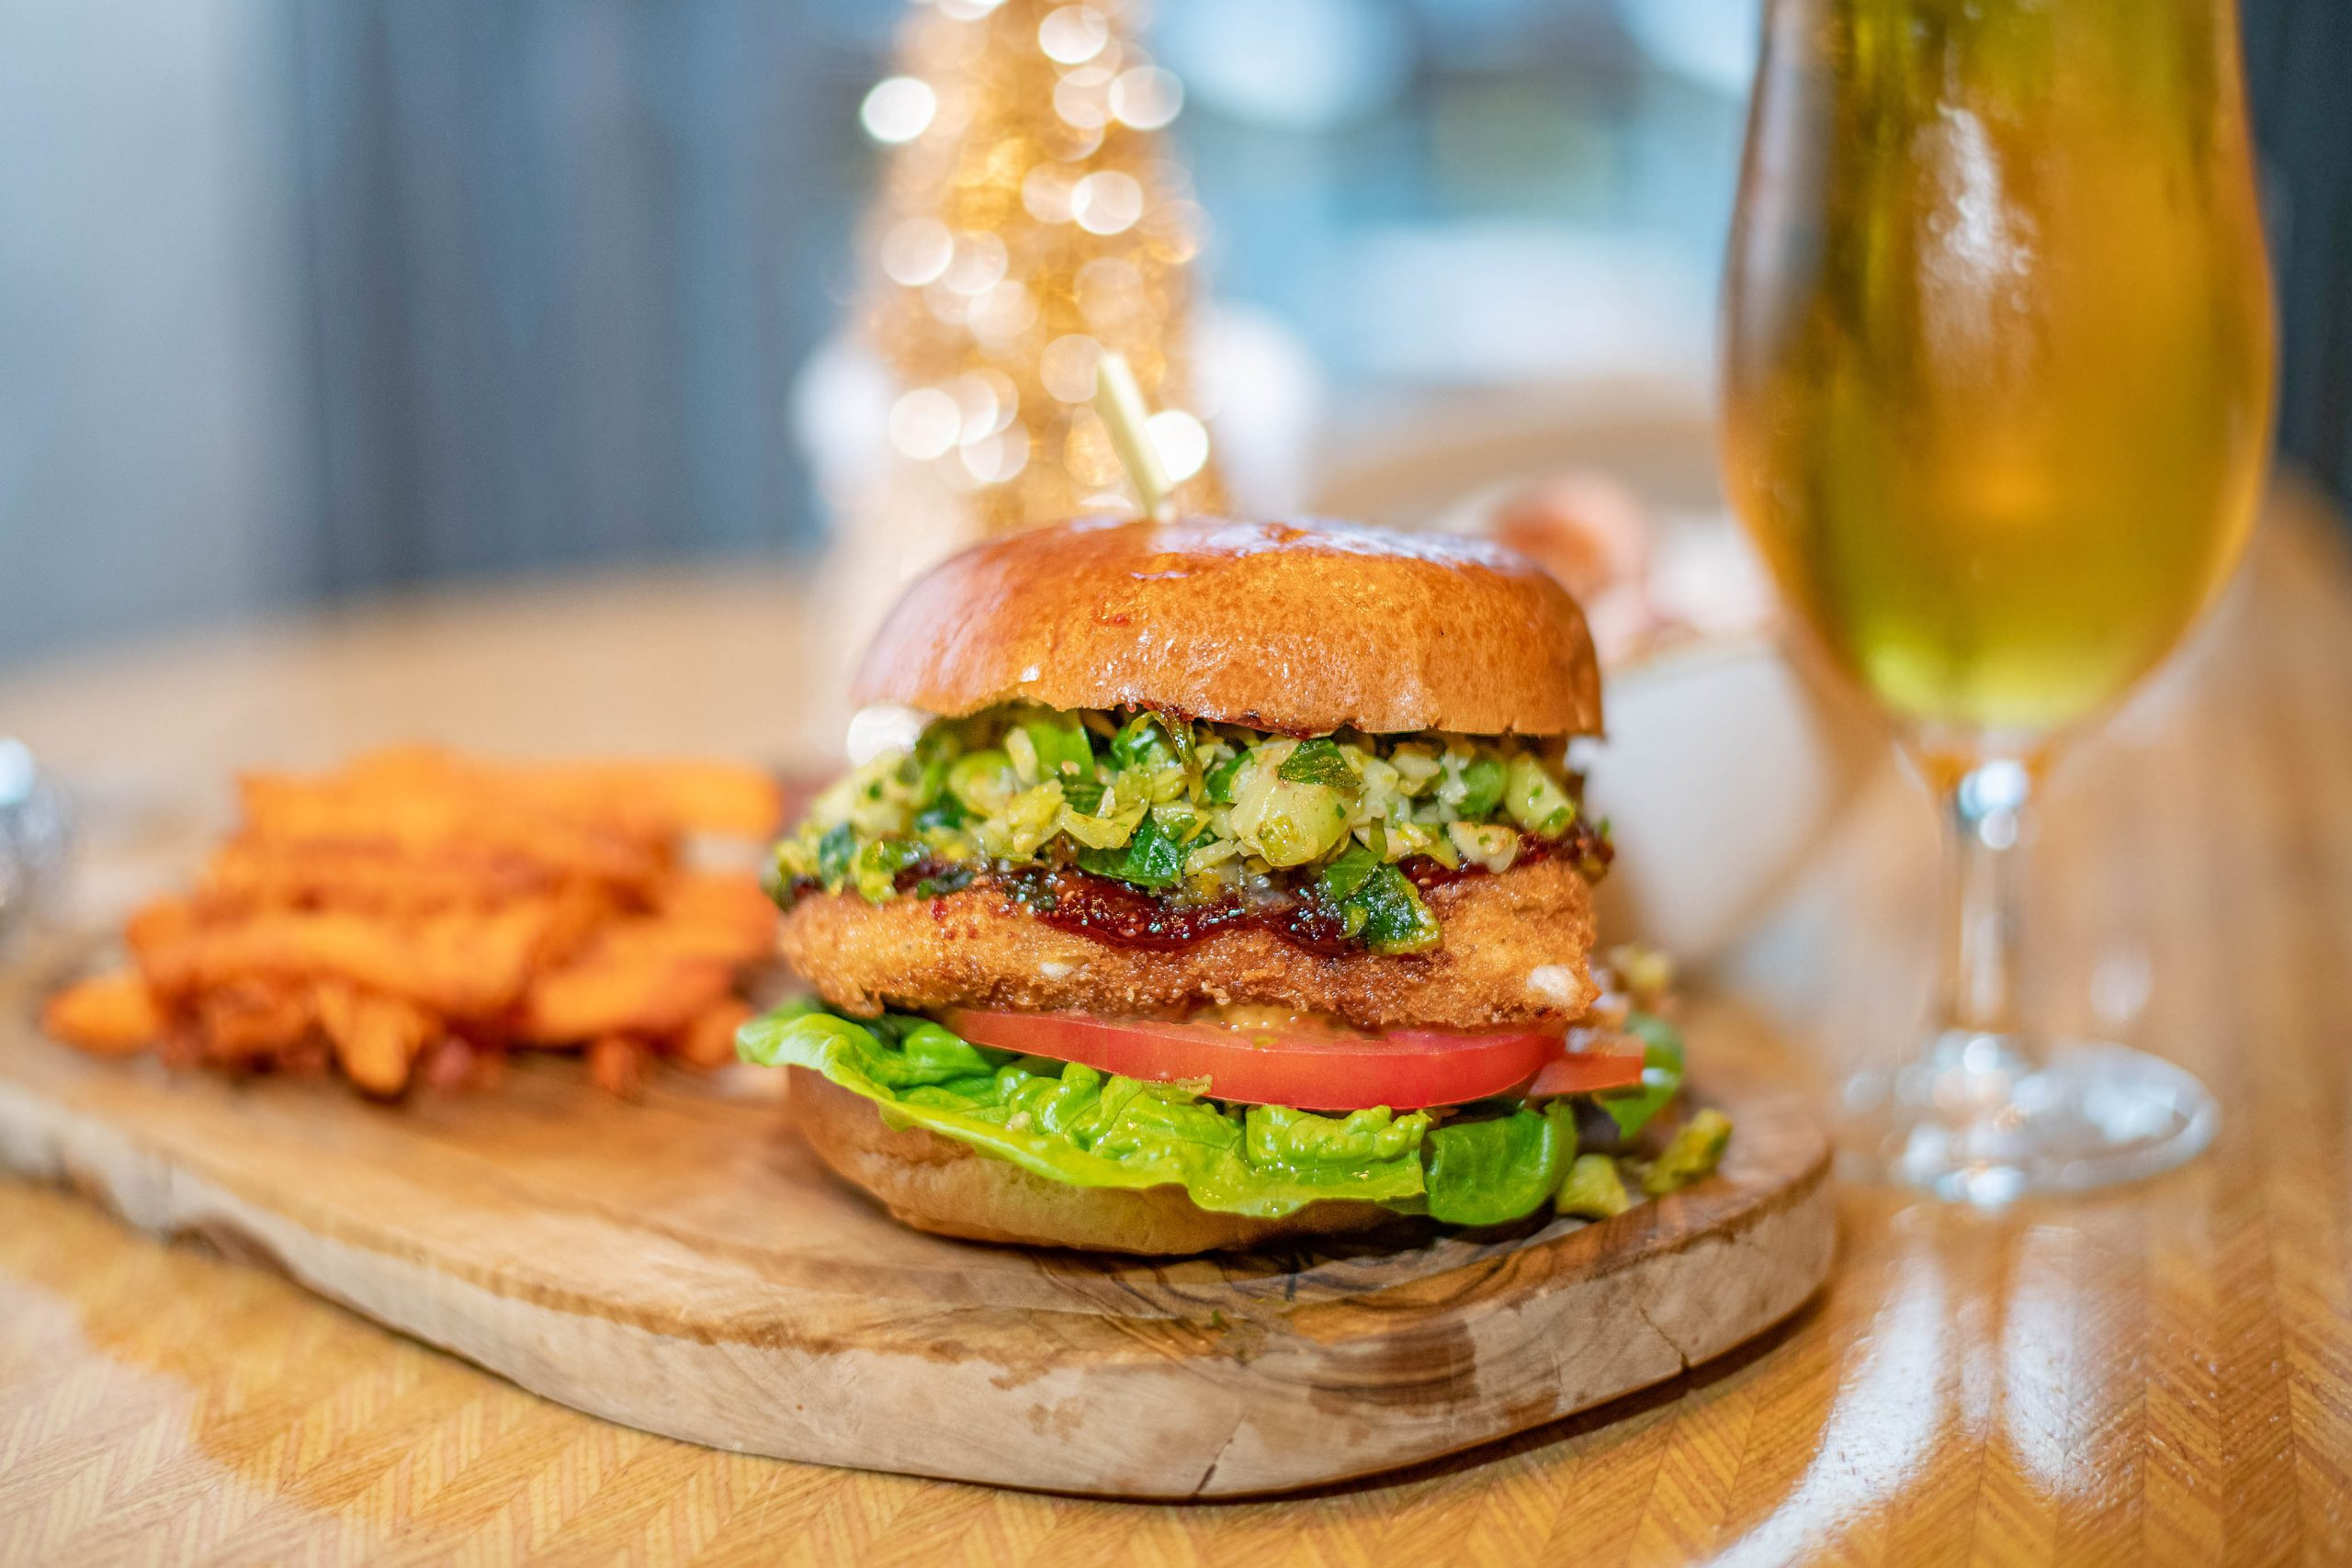 Top 5: Christmas Burgers in London 2019, best Christmas Burgers in London 2019, best Christmas Burgers london